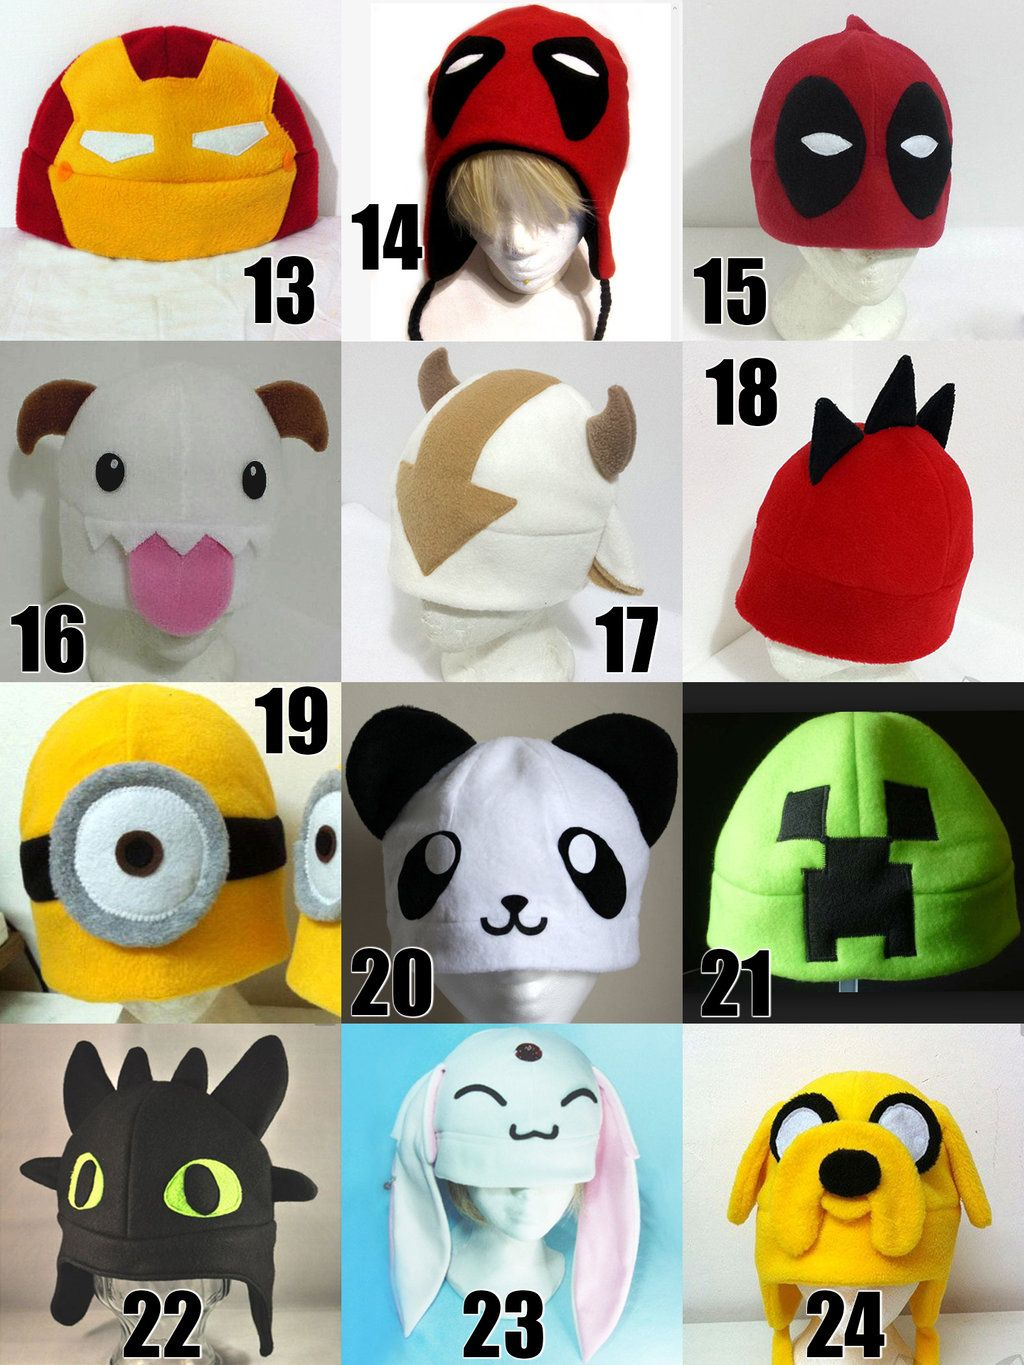 845319540d8da Gorros Kawaii Otaku Anime Jake Finn Chimuelo Deadpool - Bs. 5.500